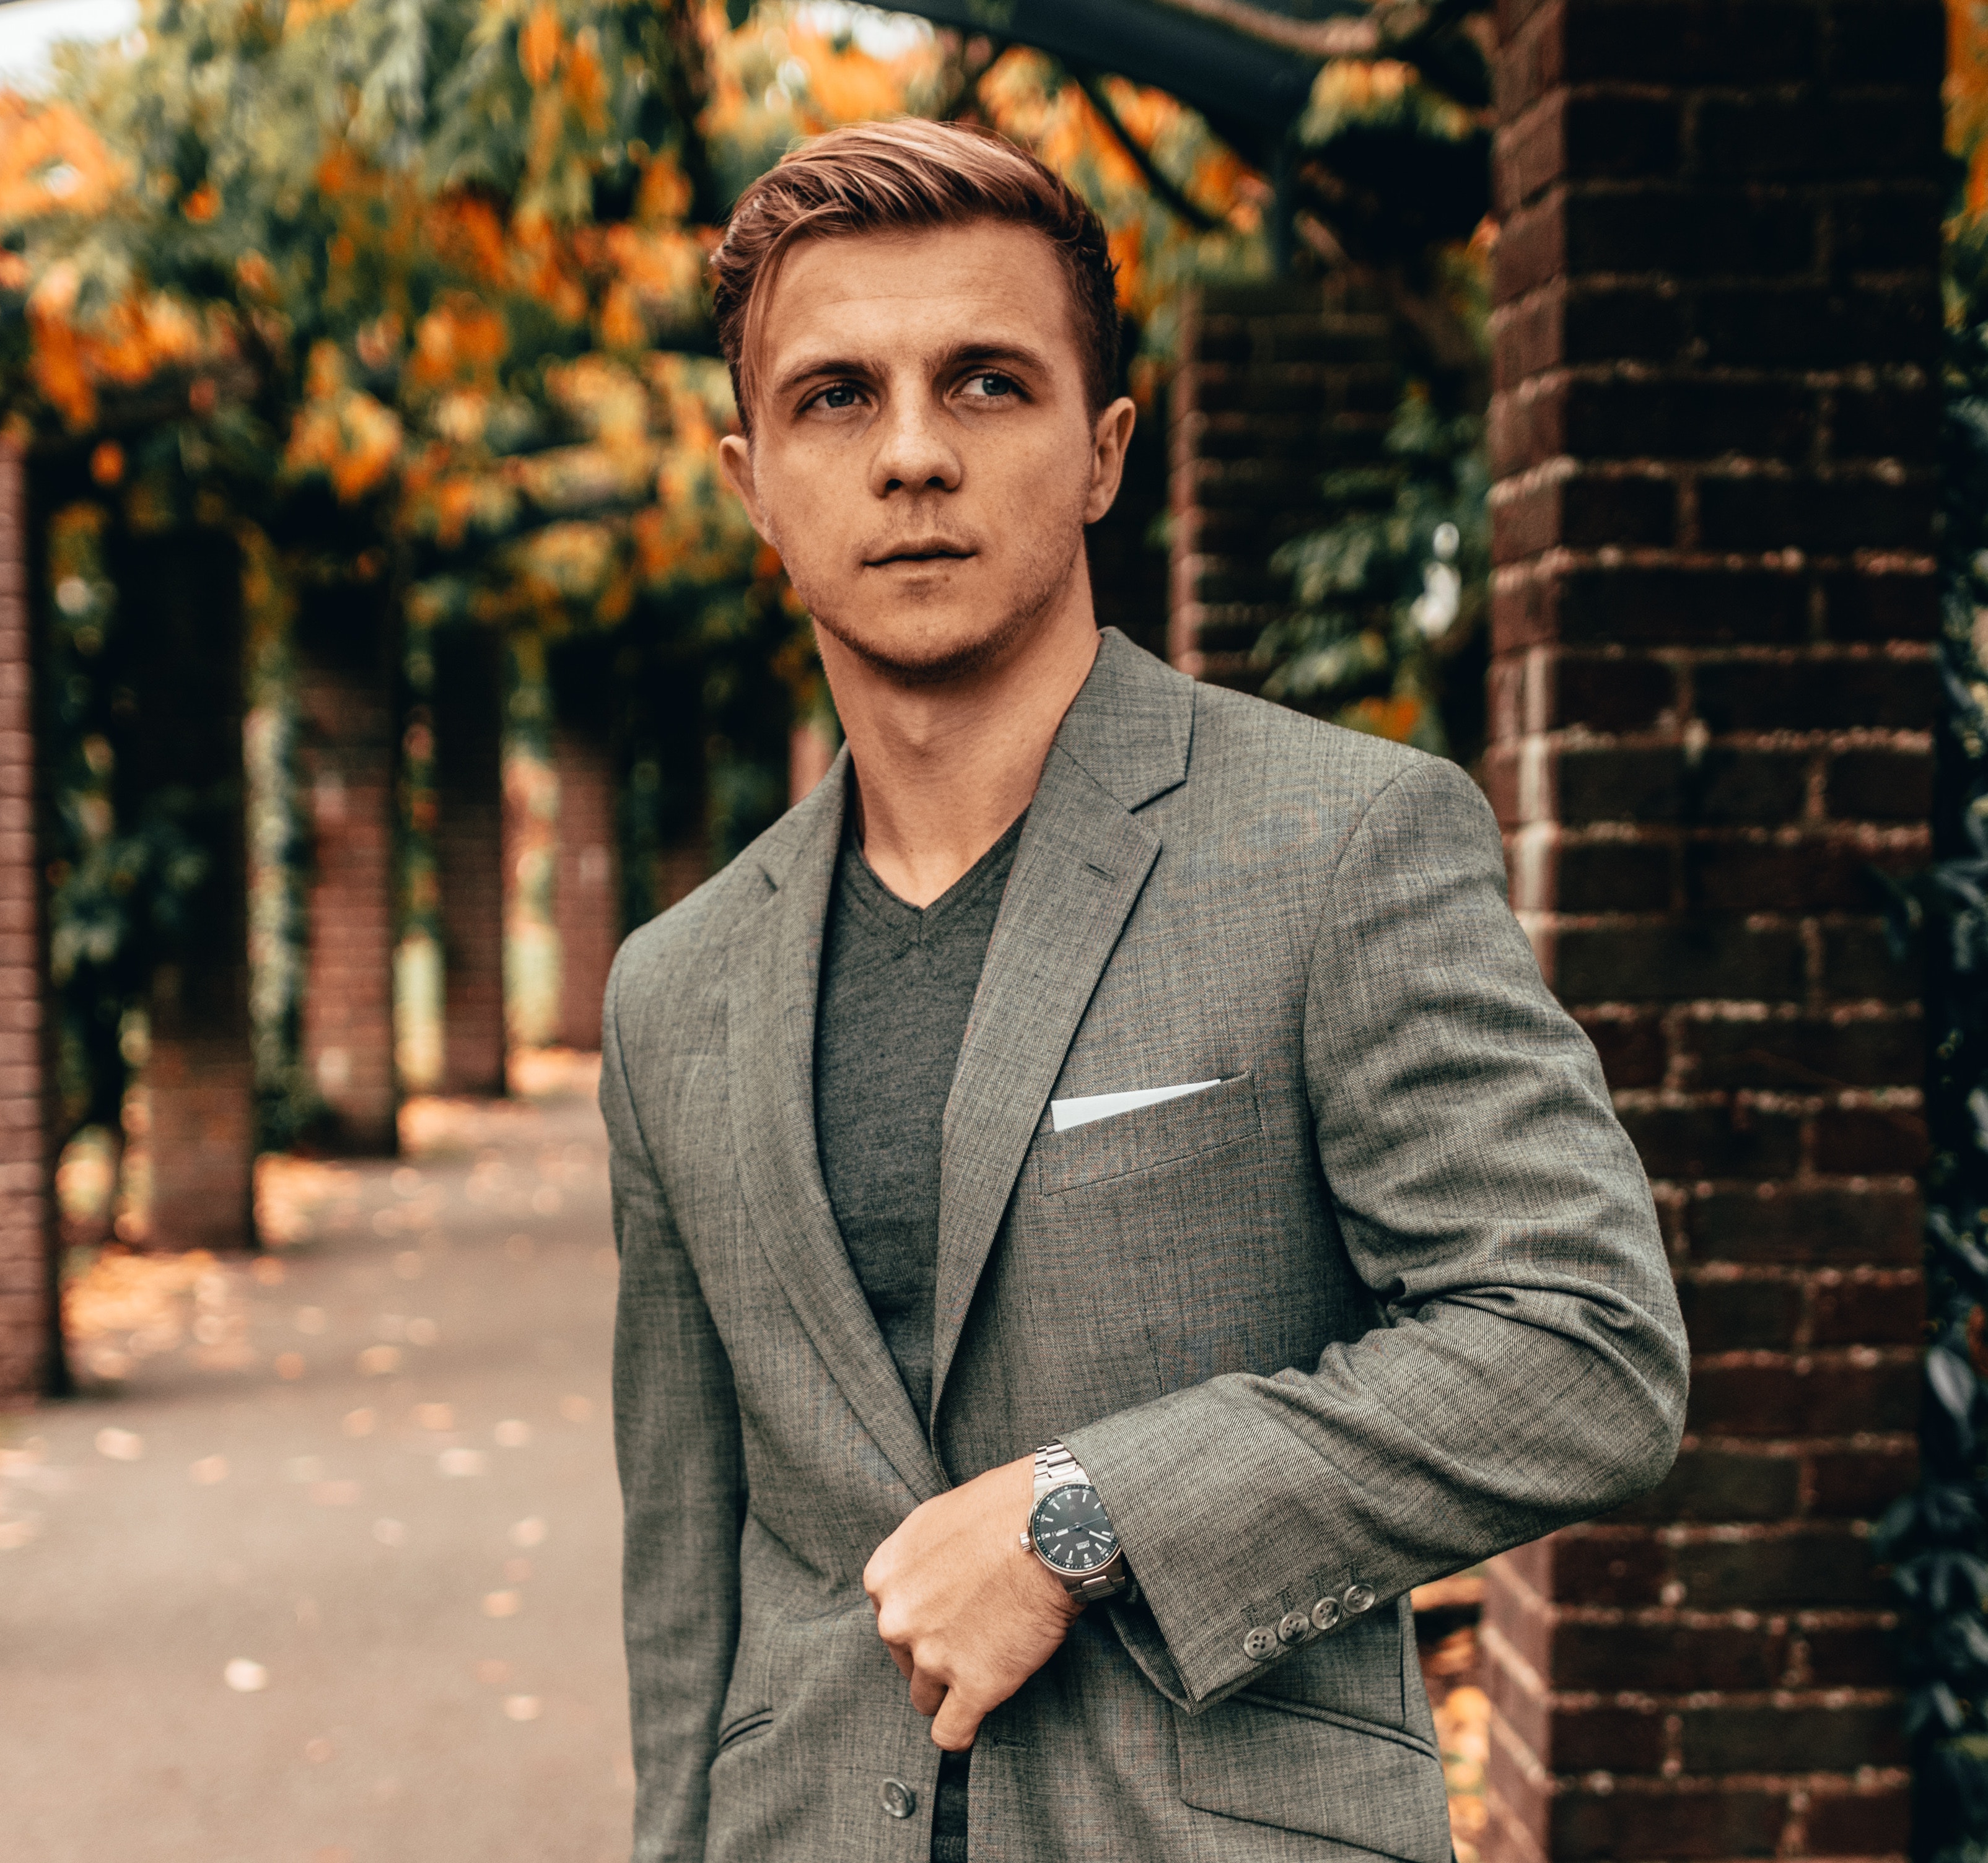 Mens Casual Summer Wedding Attire.The Guy S Summer Style Guide For Weddings